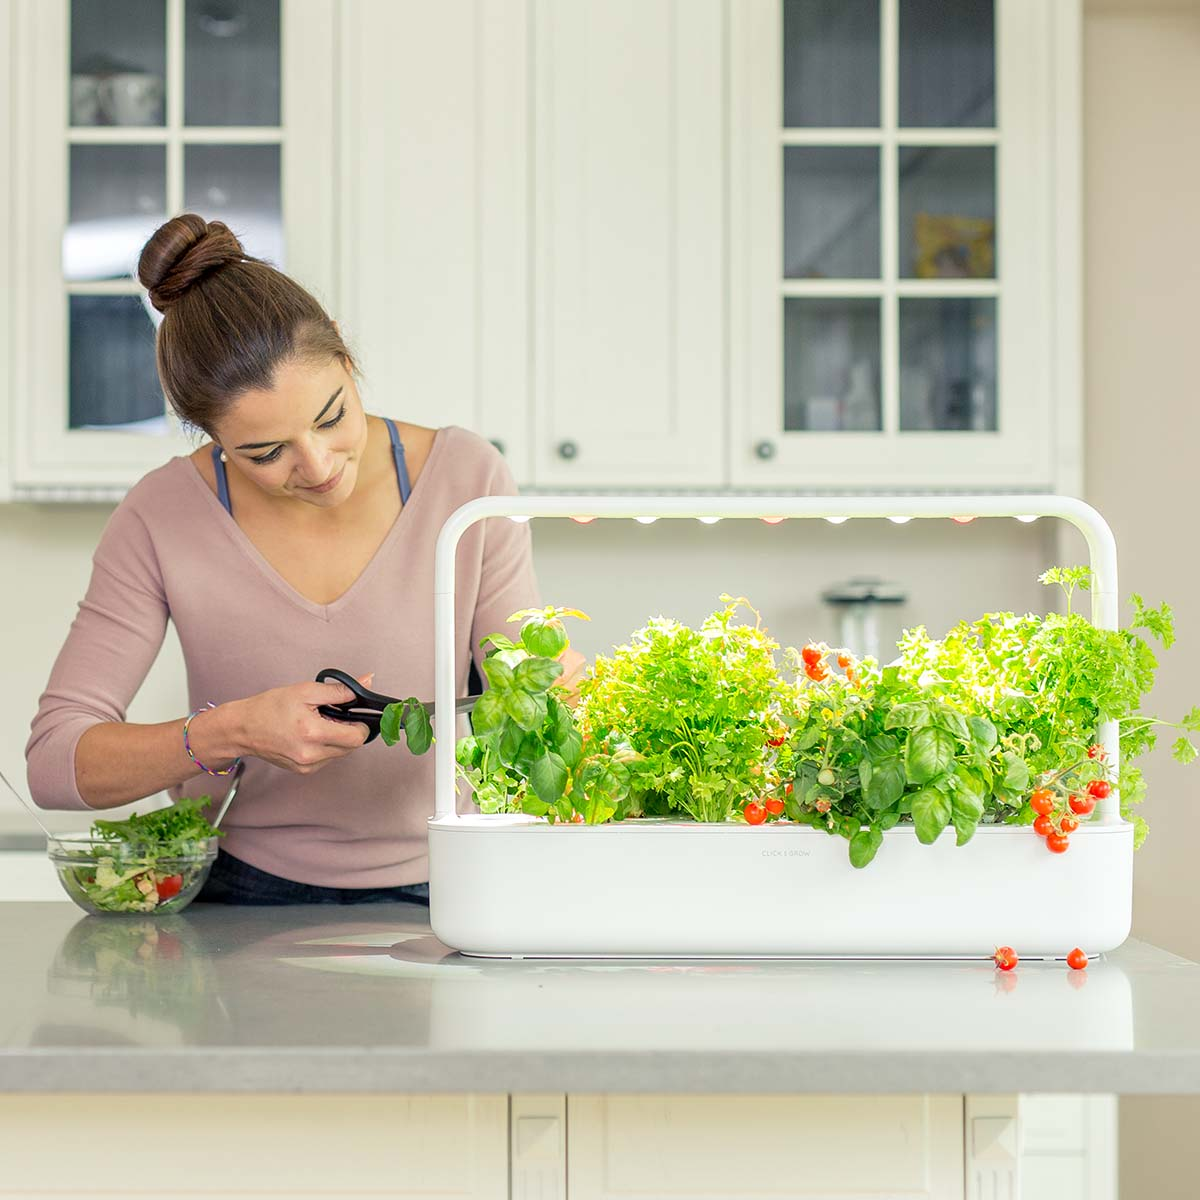 The Smart Garden 9 -meticulously designed, self-growing indoor gard